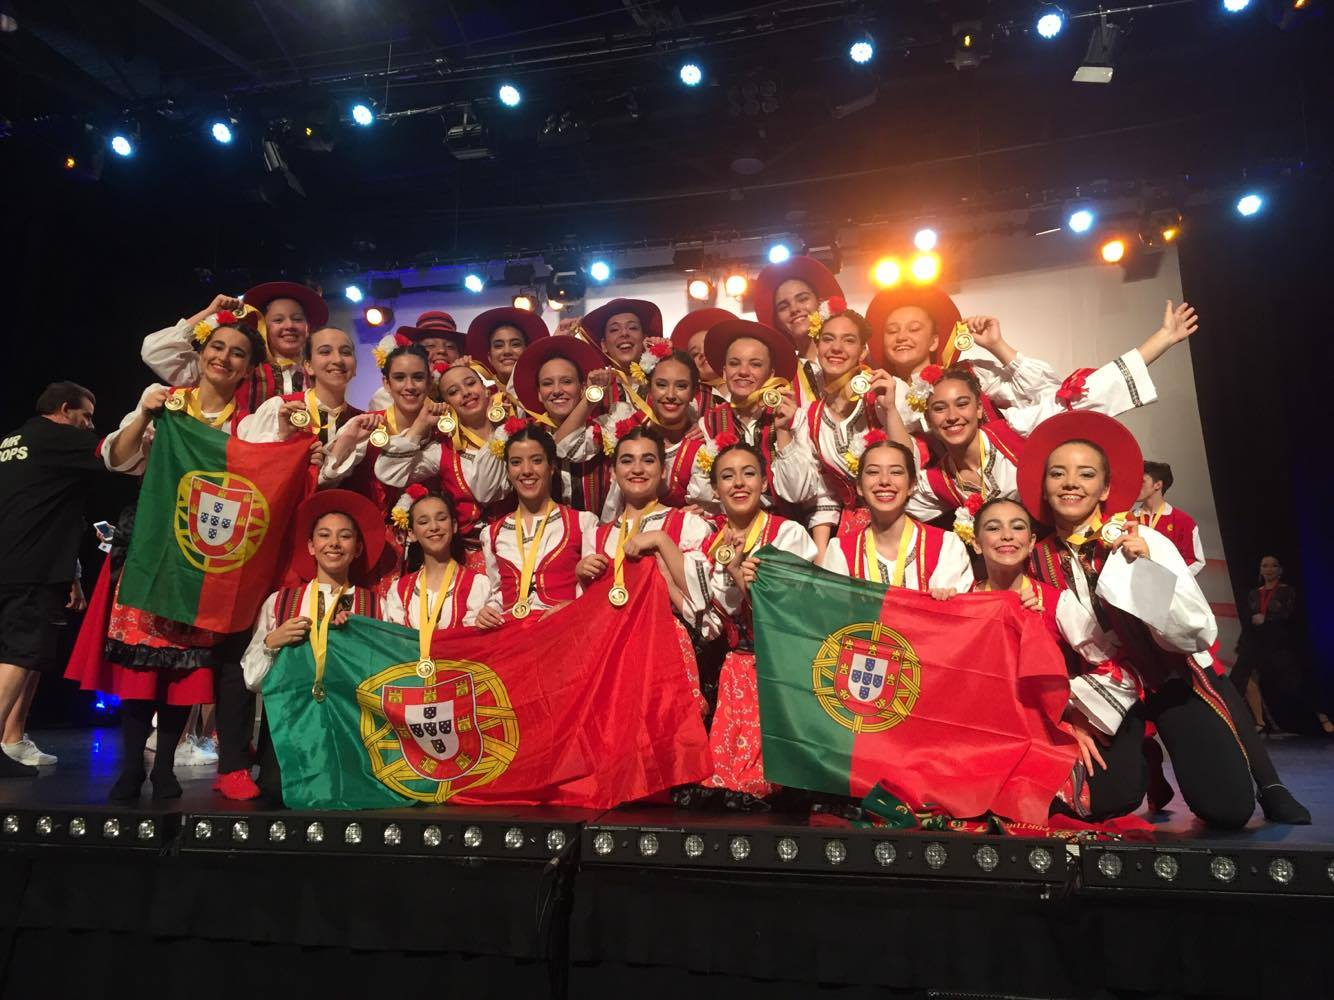 DNA_SERBIAN DANCE gold medal